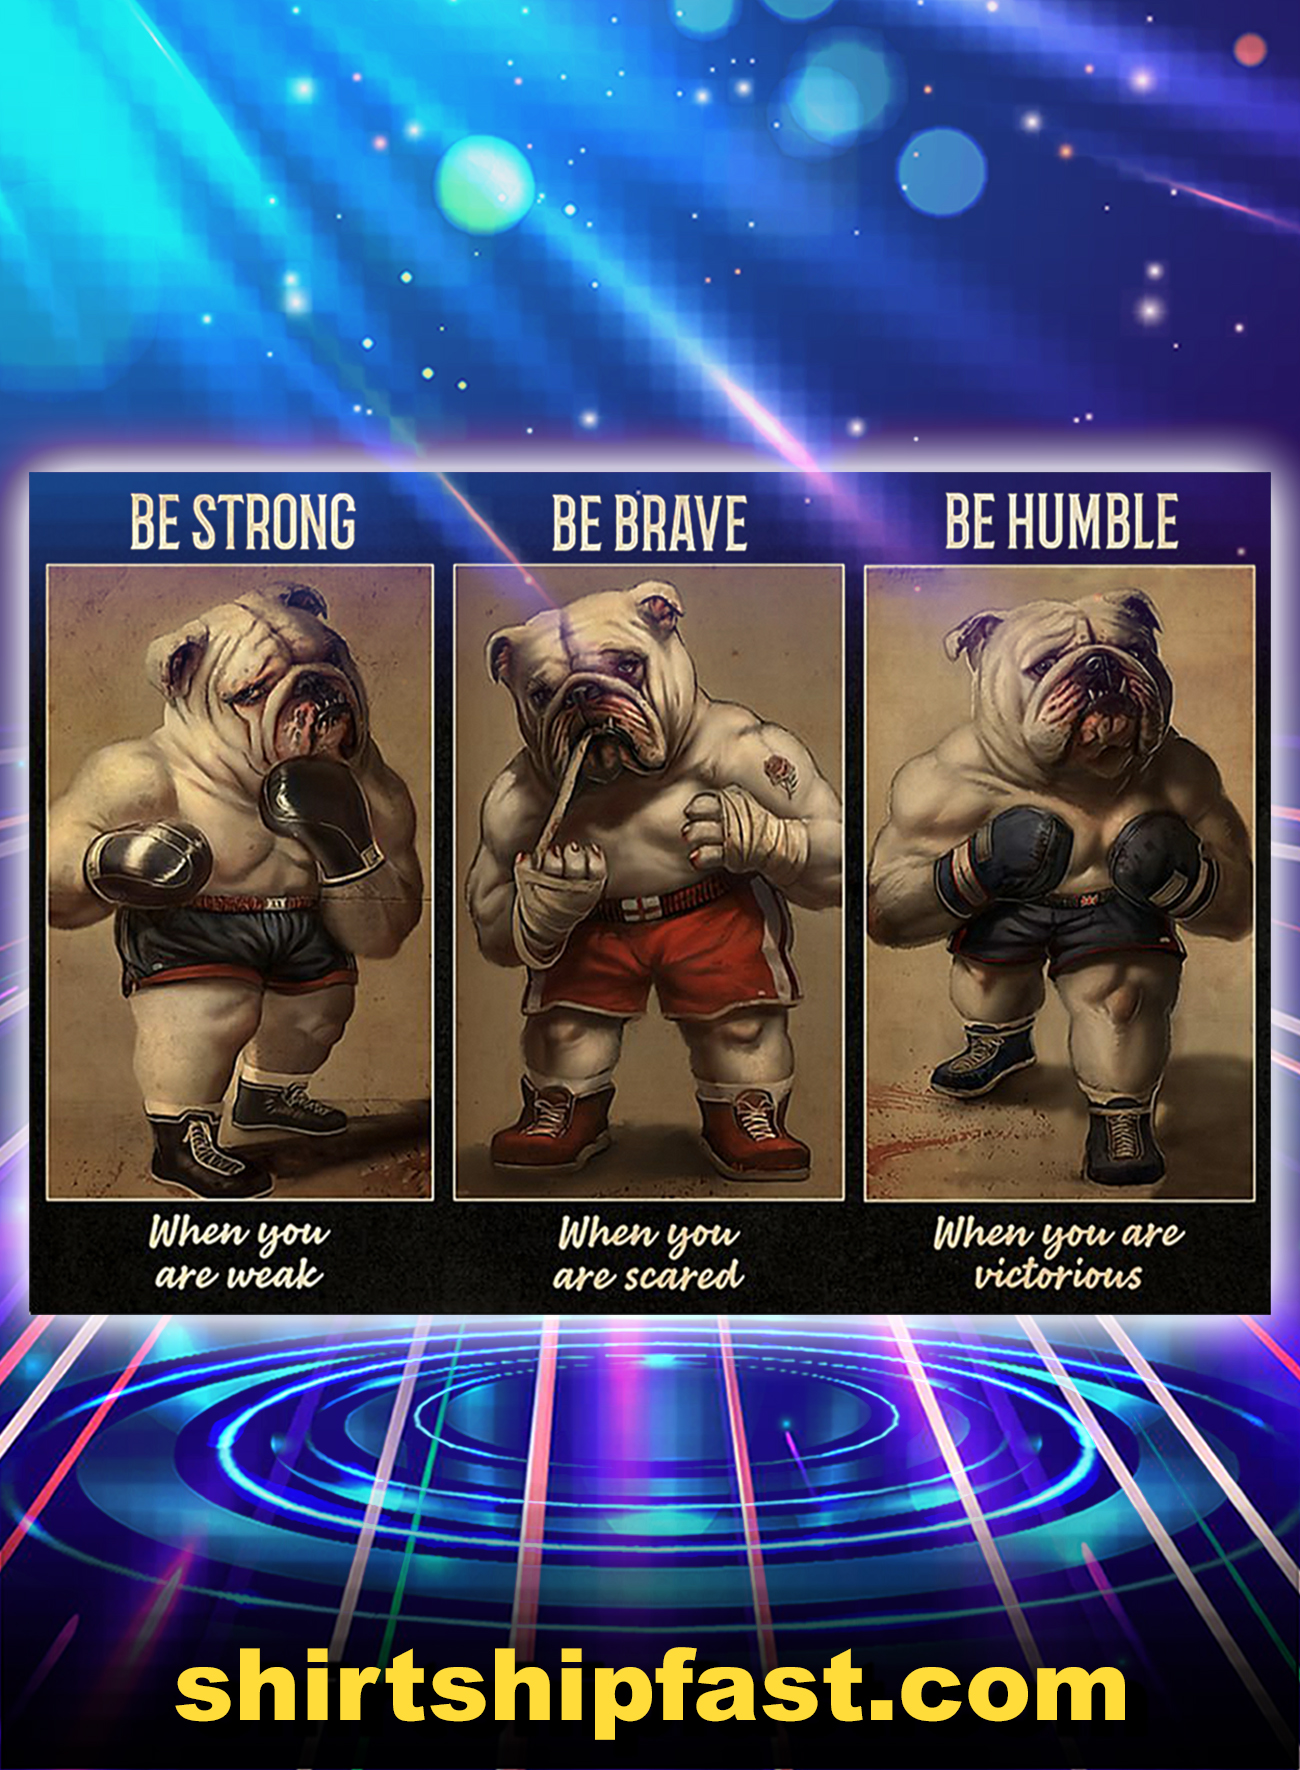 Bulldog boxer be strong be brave be humble poster - A1